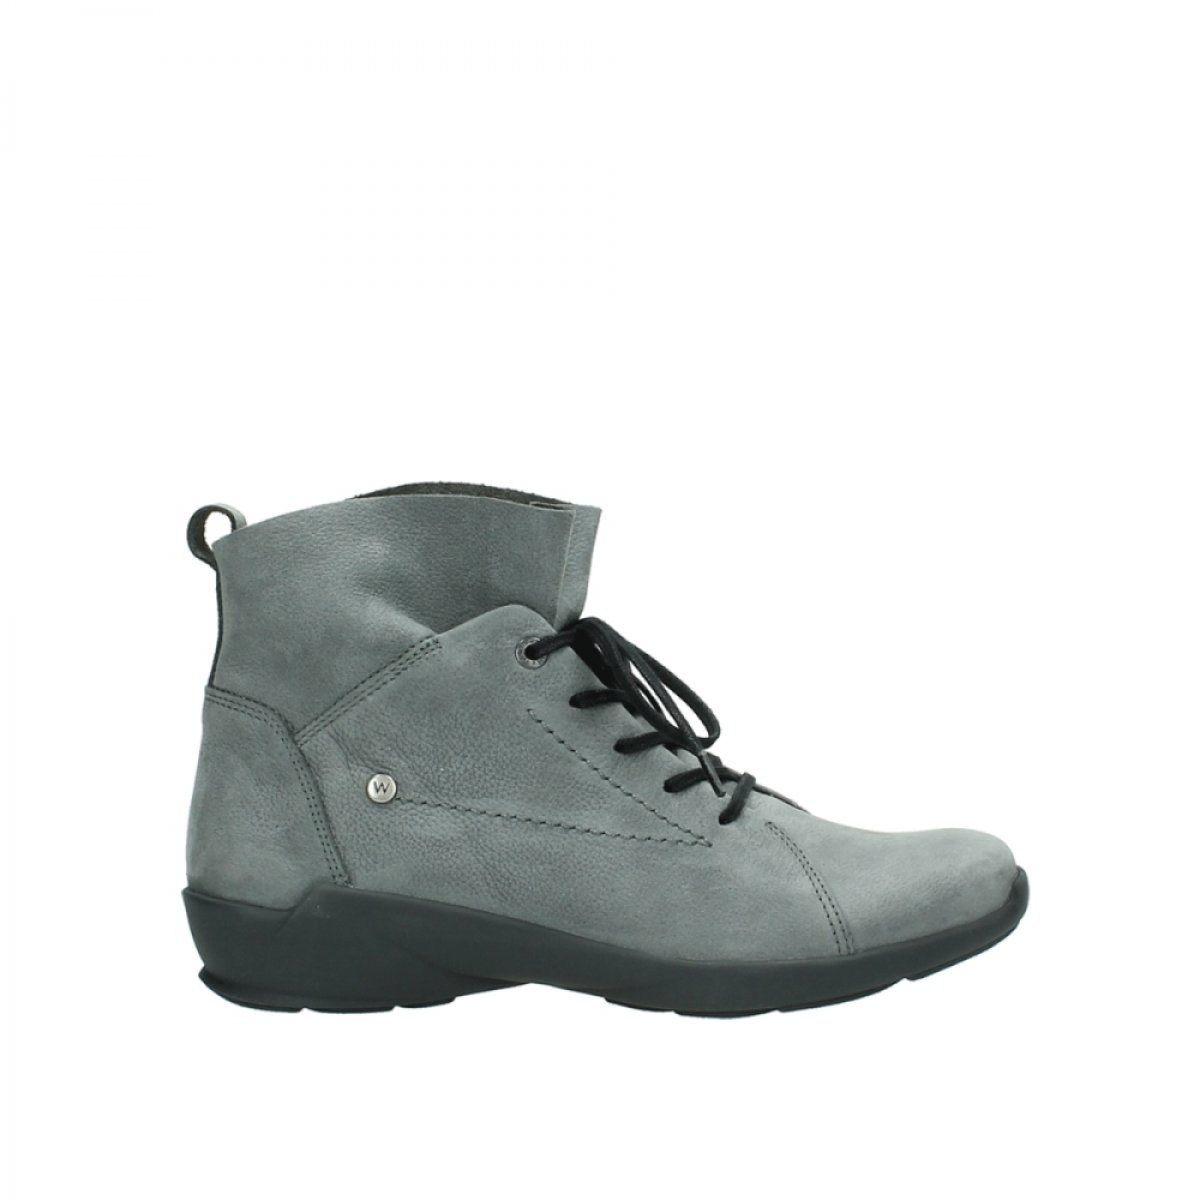 Wolky comodidad Lace Up Zapatos 01574 Bello 40 EU|10220 grey nubuck